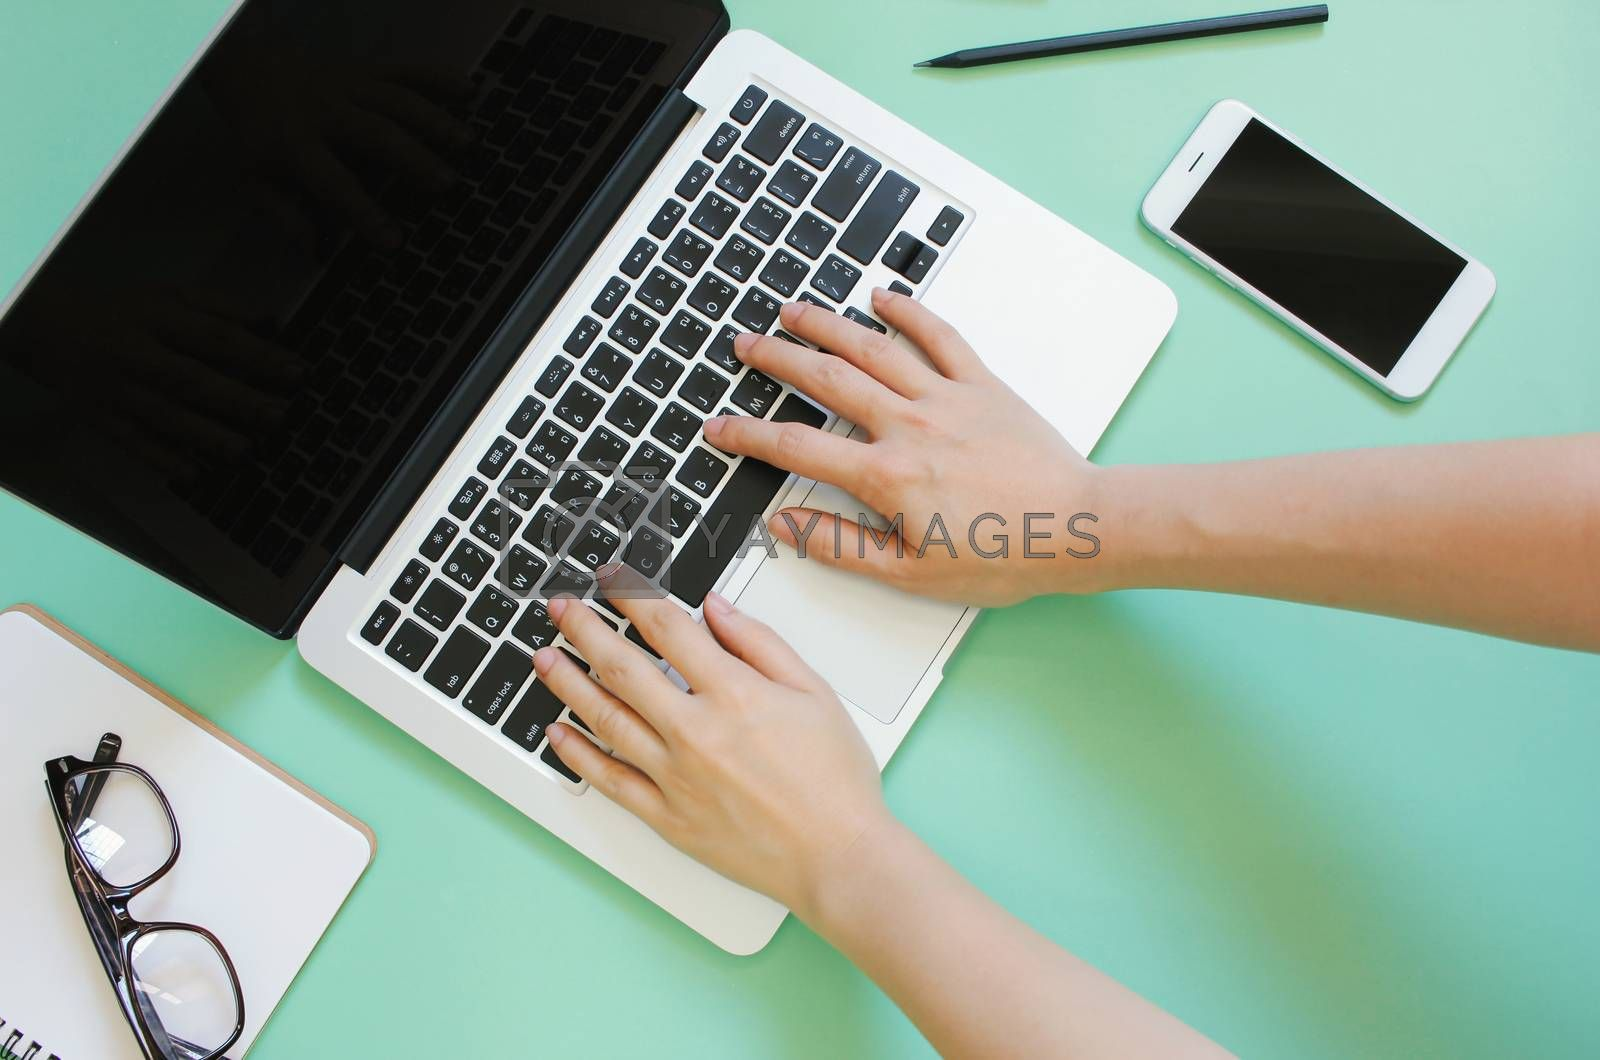 Hand using laptop on creative flat lay workspace desk with smartphone and stationery on green background